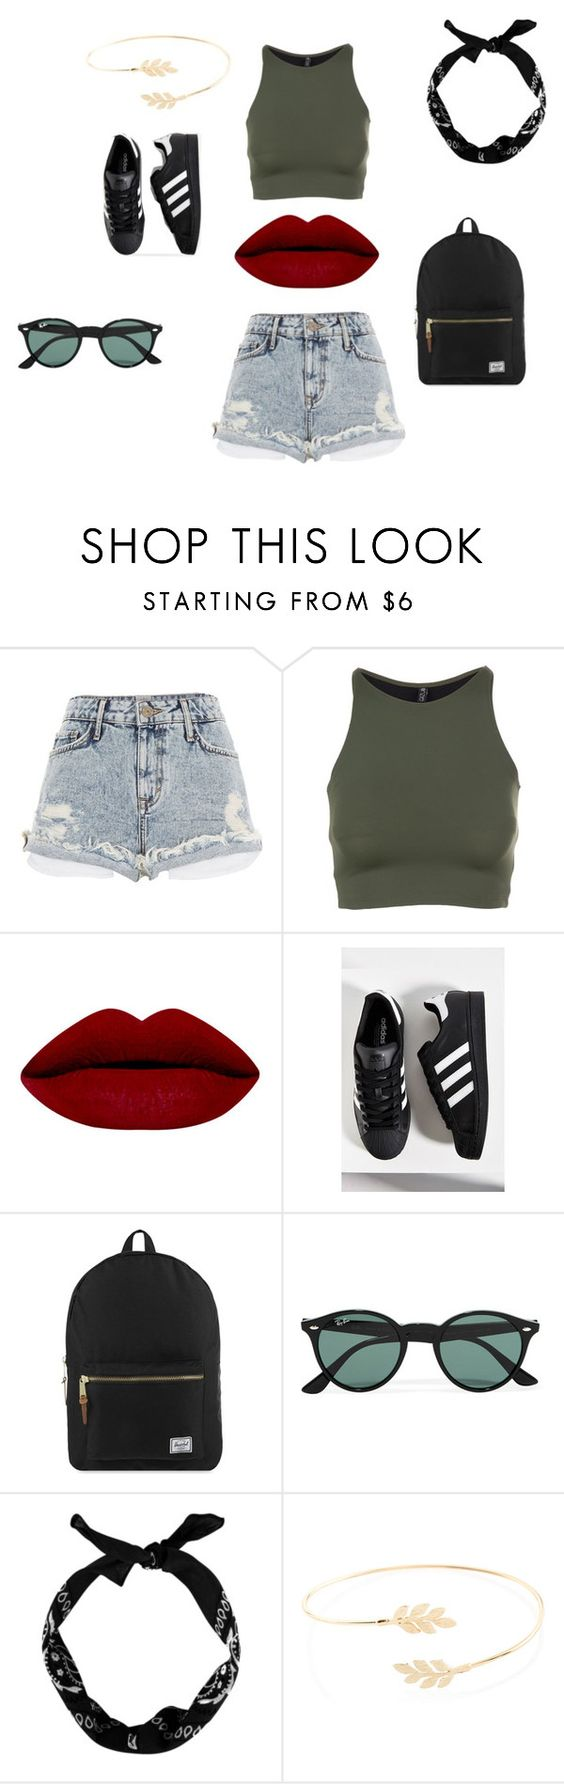 """summer"" by flowi-1 on Polyvore featuring Mode, River Island, Onzie, adidas, Herschel Supply Co., Ray-Ban, Accessorize, women's clothing, women und female"